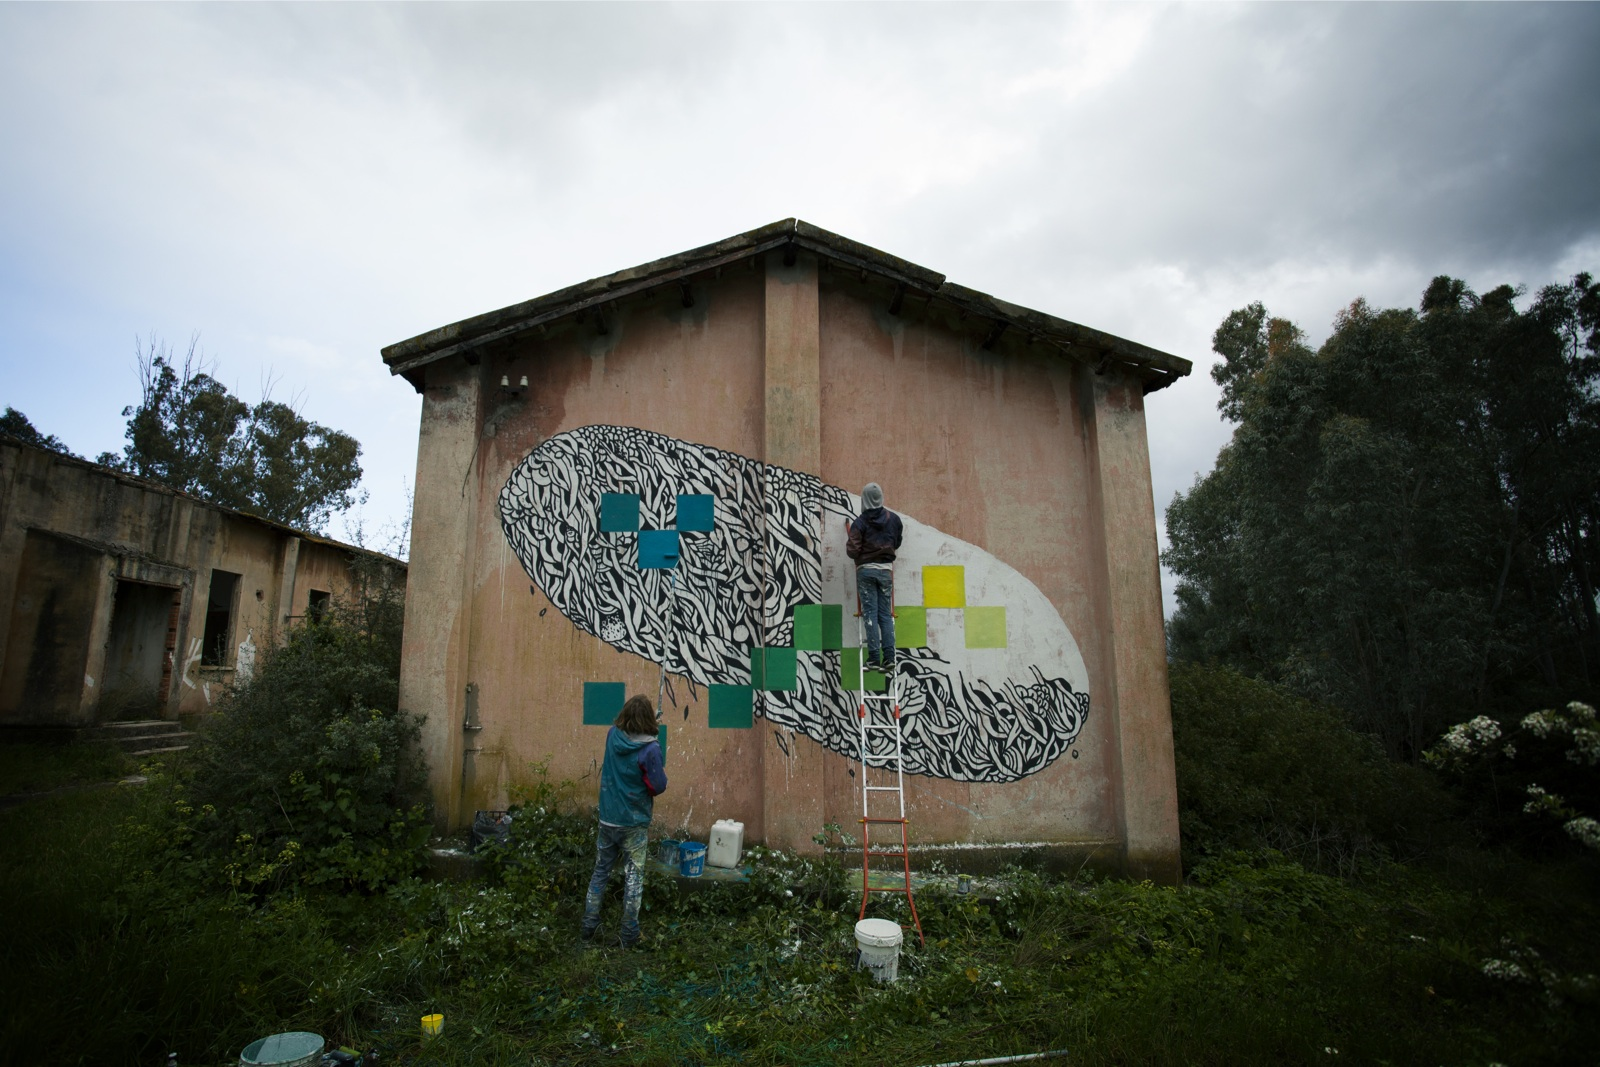 tellas-alberonero-new-mural-in-sardinia-02